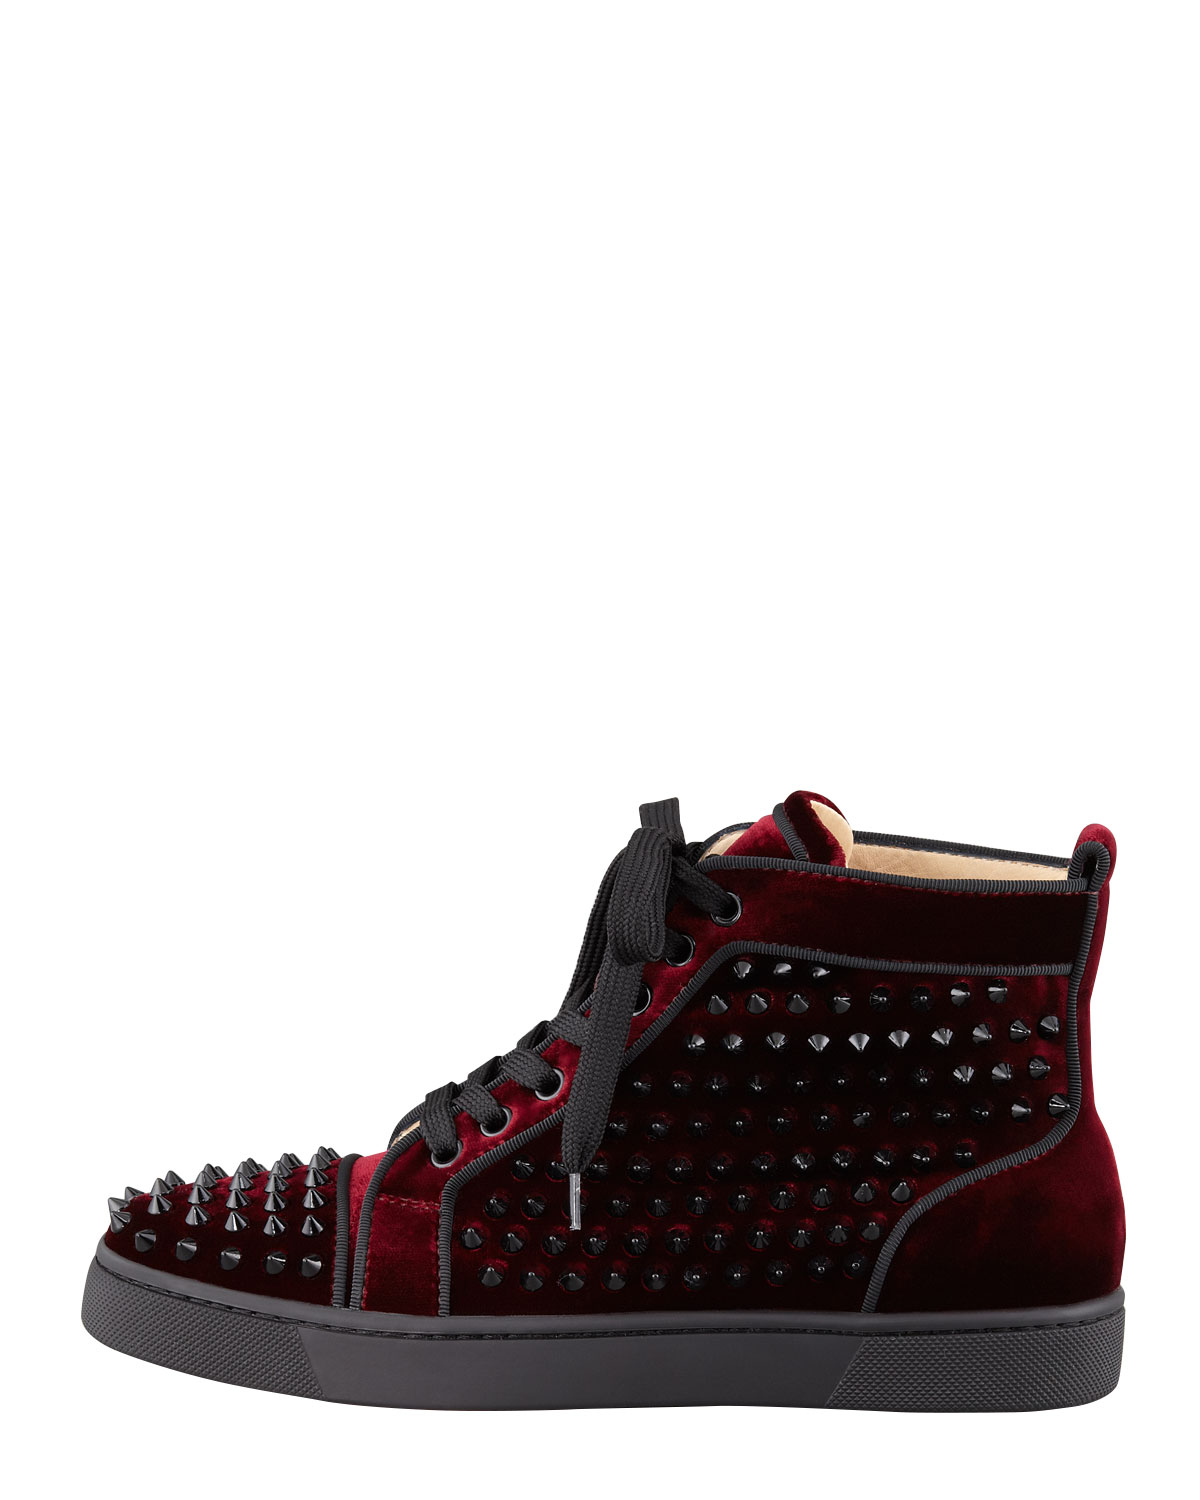 basket louboutin bordeaux